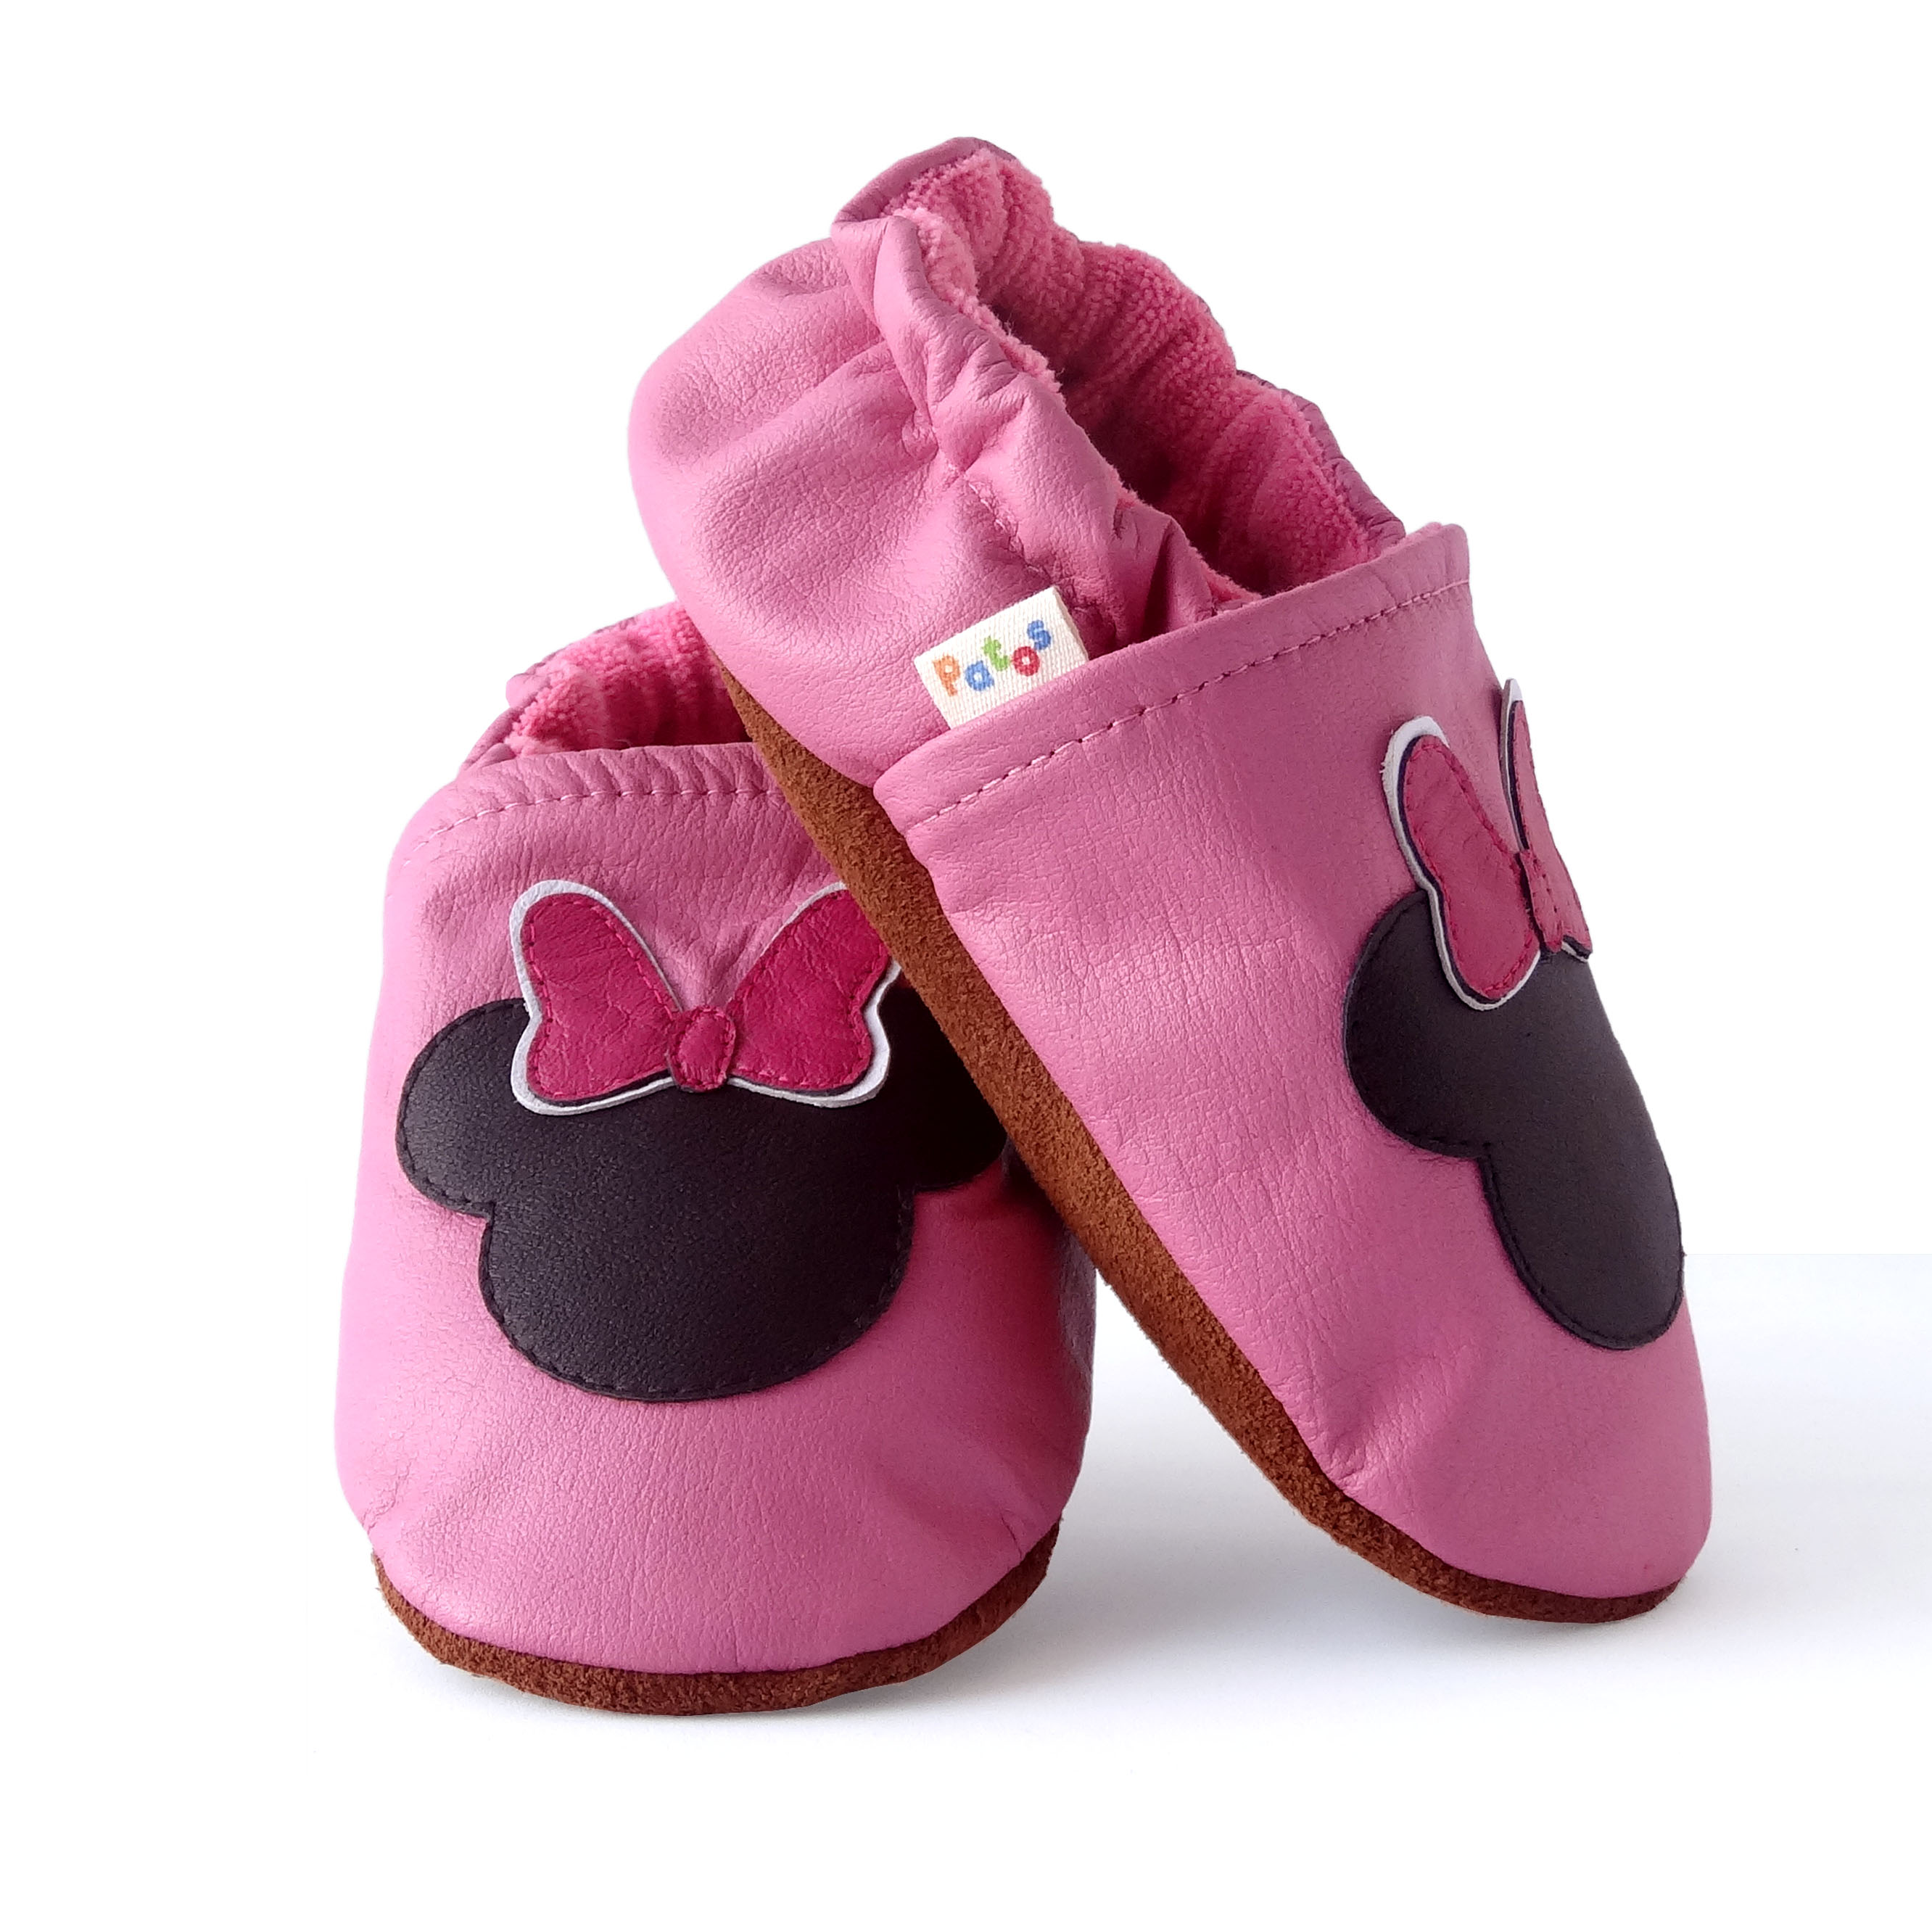 983e906a0e1f Best first walking shoes for baby girl